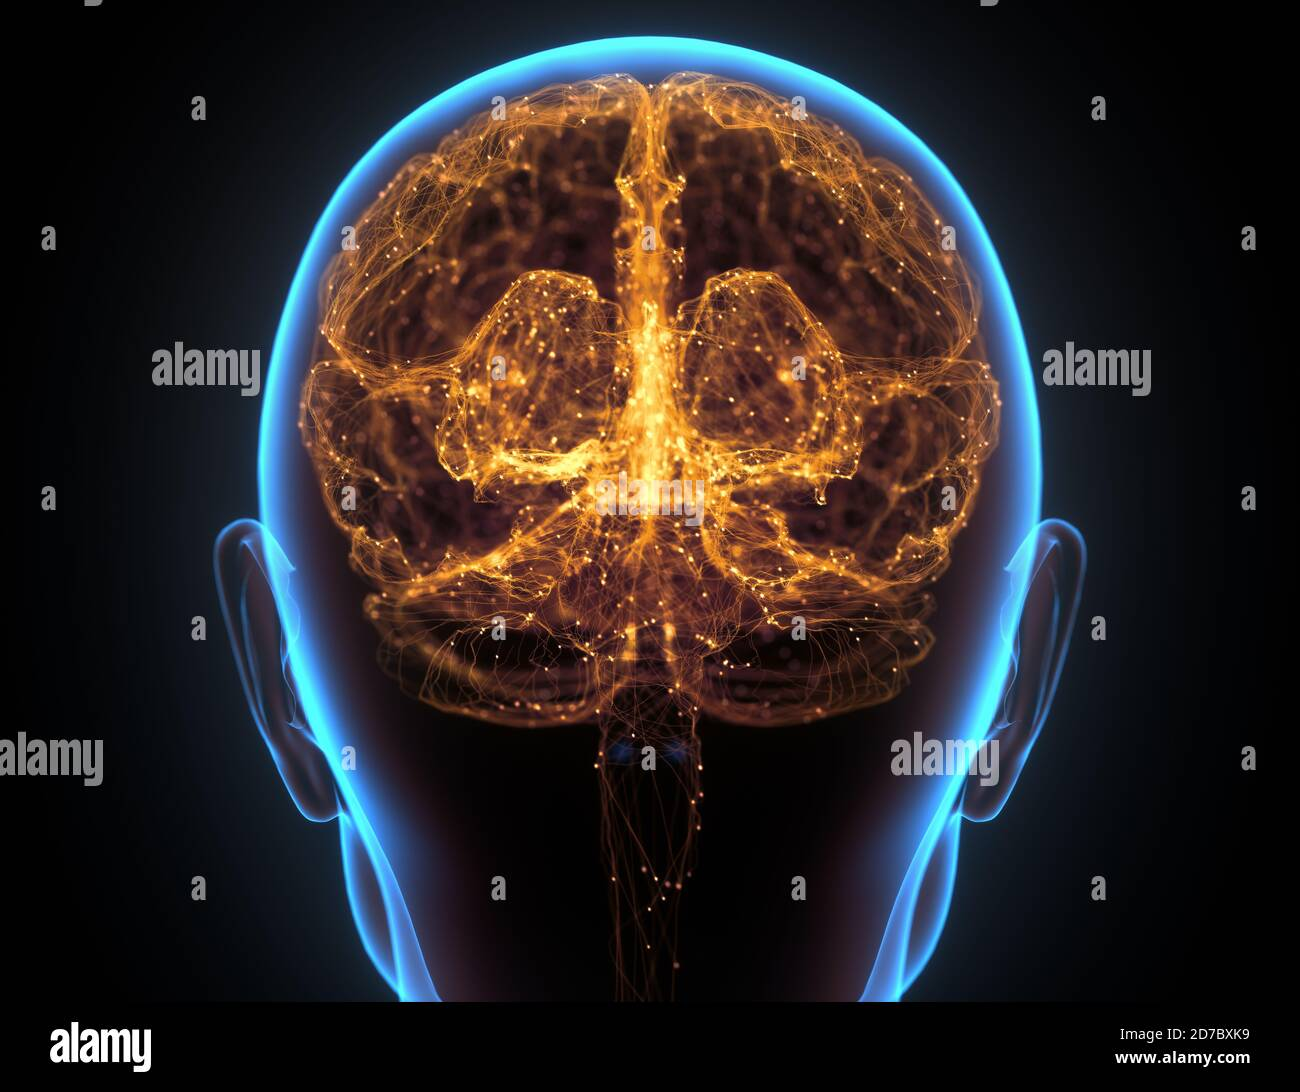 X-ray of the head and human brain in concept of neural connections and electrical pulses. Stock Photo